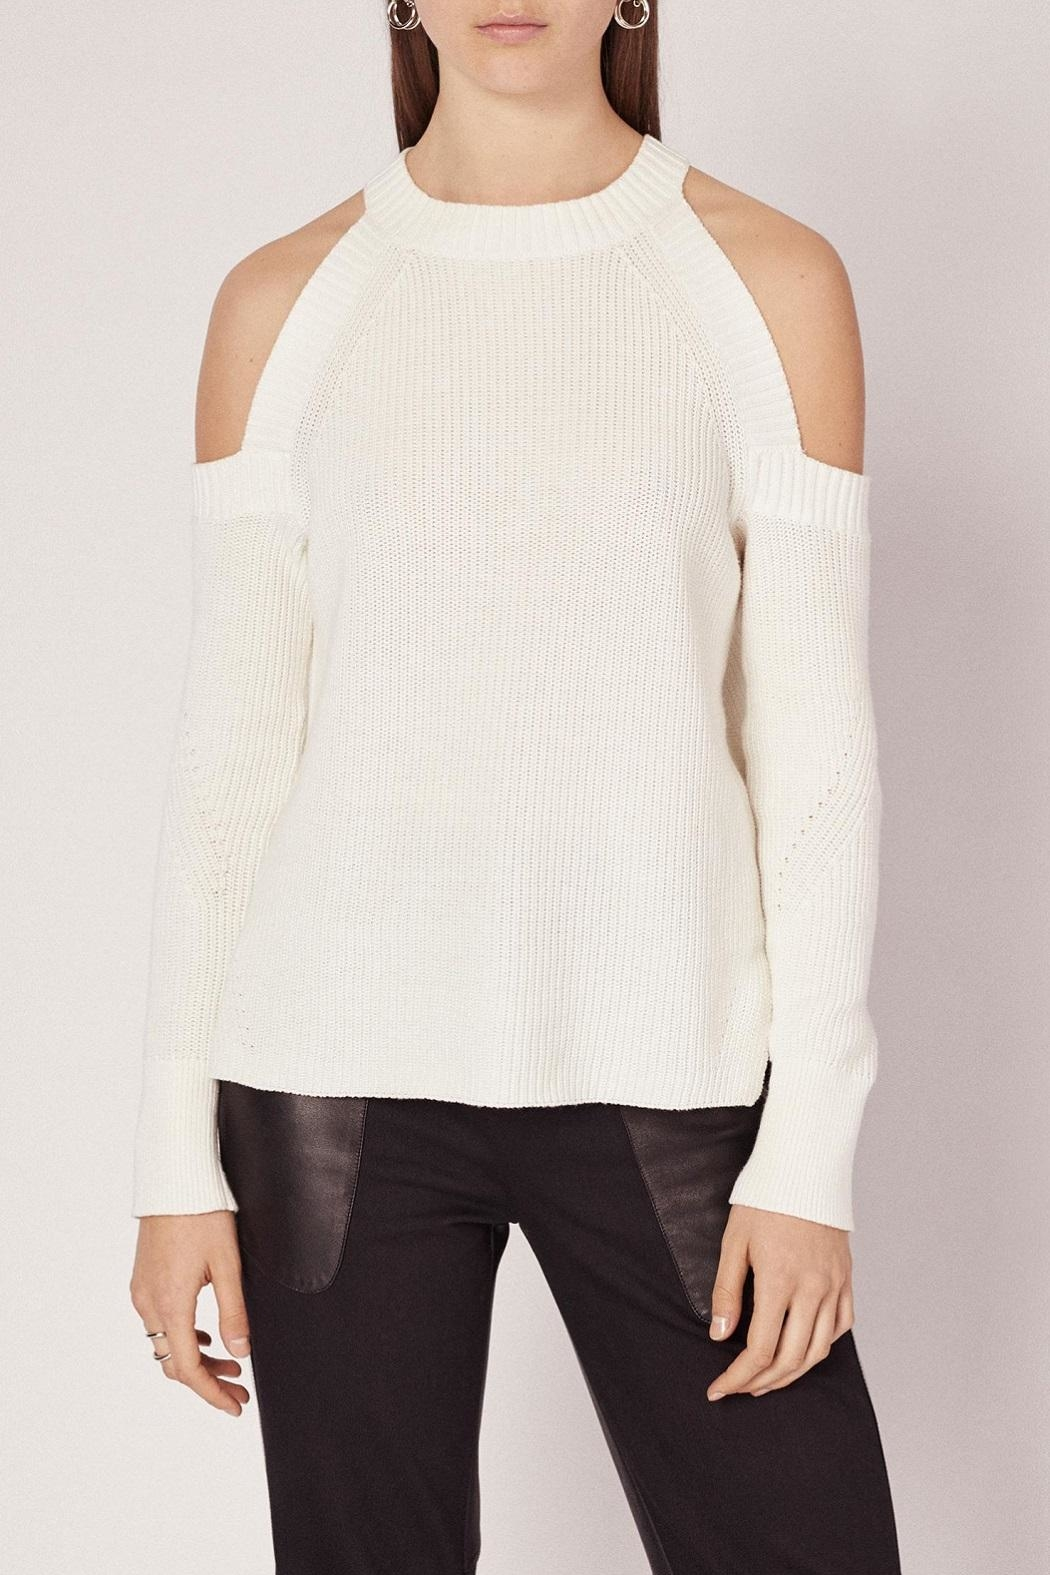 Rag & Bone Dana Cold Shoulder Sweater - Main Image